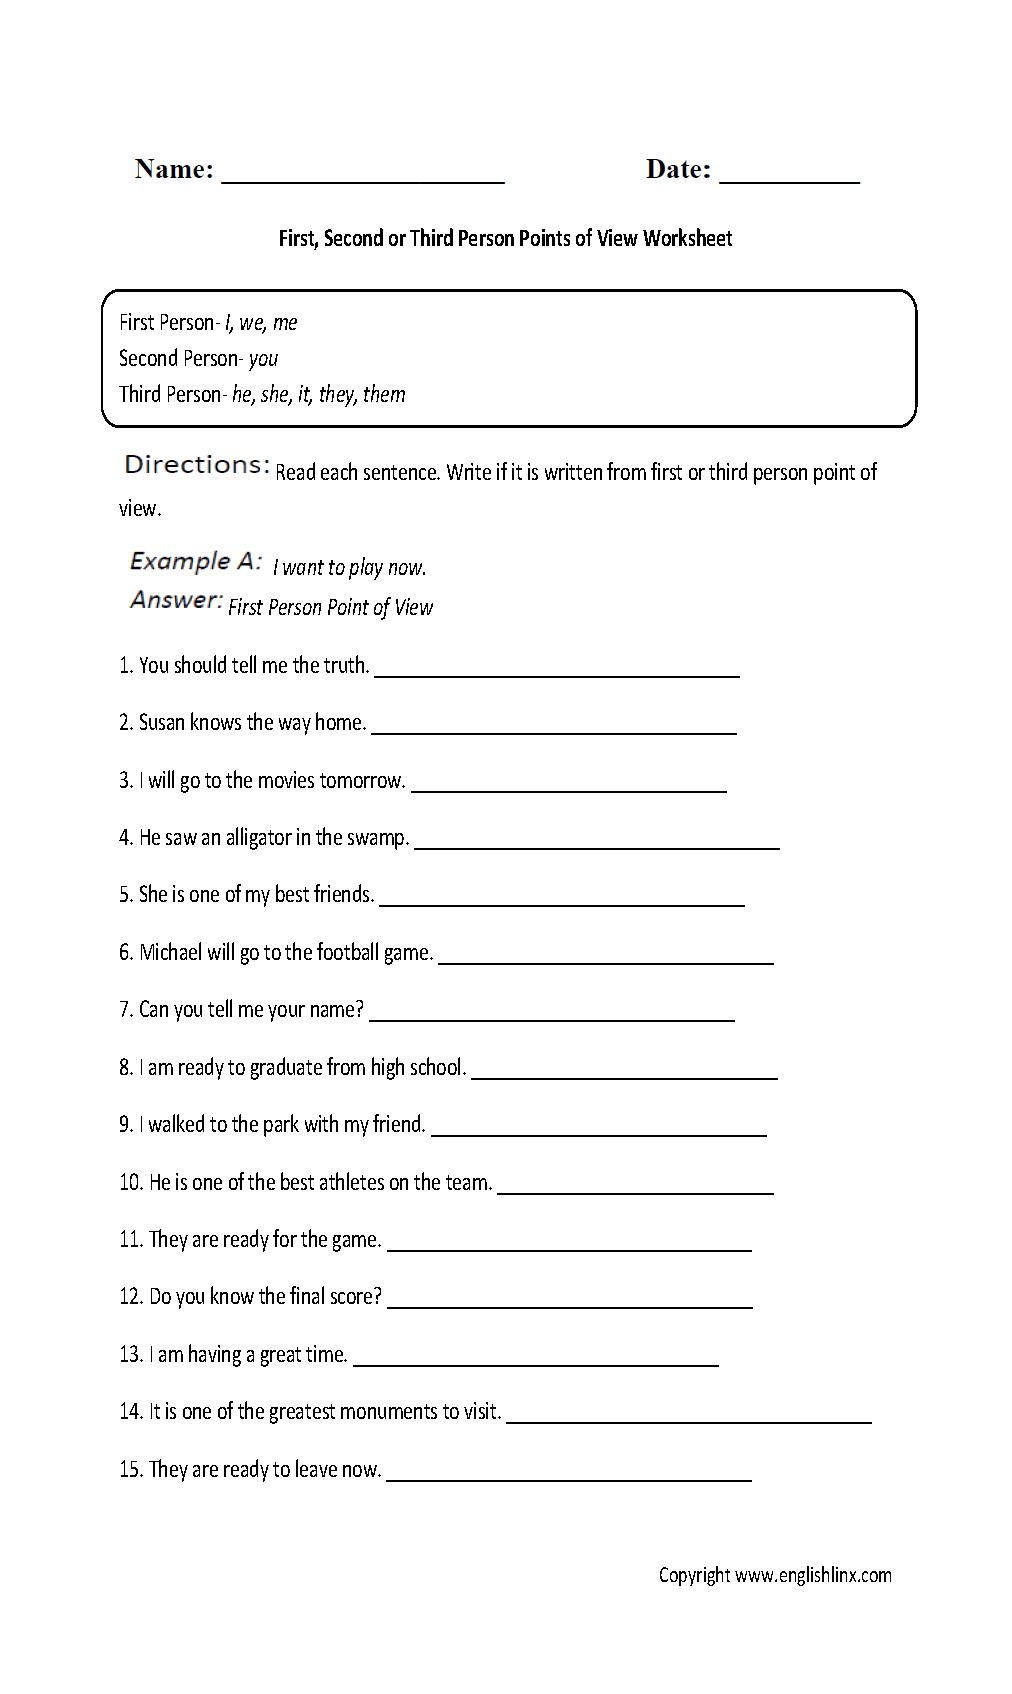 Weirdmailus  Winning Englishlinxcom  Point Of View Worksheets With Excellent Point Of View Worksheet With Easy On The Eye Wudu Worksheet Also Nd Grade Math Worksheets Free Printables In Addition O Worksheets For Kindergarten And Maths Tables Worksheets As Well As Make Your Own Printable Handwriting Worksheets Additionally Free Printable Grade  Math Worksheets From Englishlinxcom With Weirdmailus  Excellent Englishlinxcom  Point Of View Worksheets With Easy On The Eye Point Of View Worksheet And Winning Wudu Worksheet Also Nd Grade Math Worksheets Free Printables In Addition O Worksheets For Kindergarten From Englishlinxcom